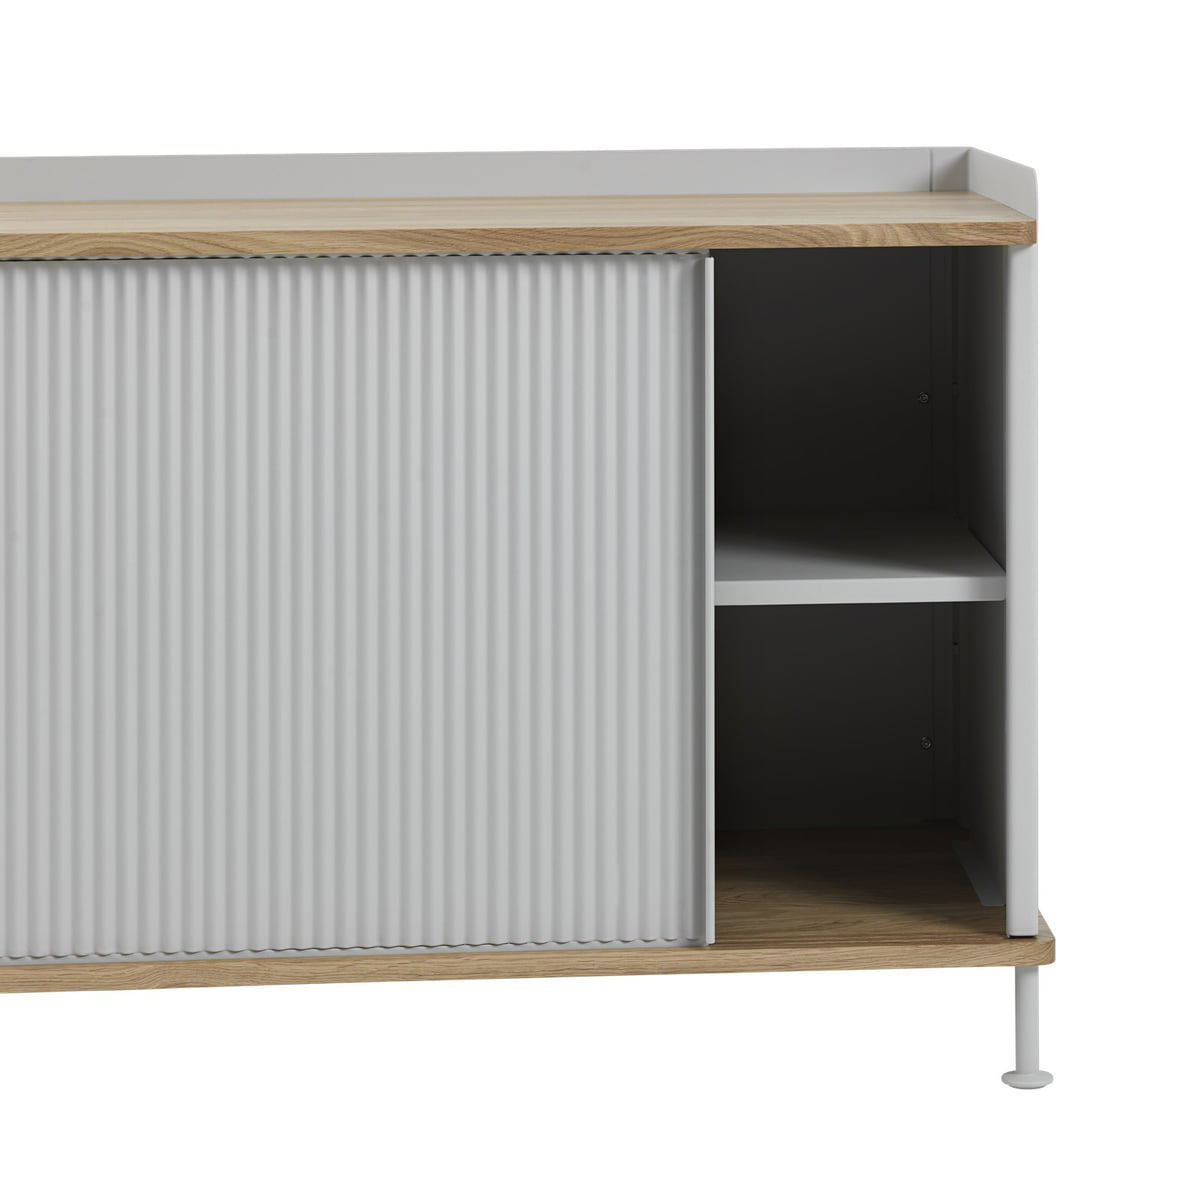 Enfold sideboard by muuto connox for Sideboard niedrig